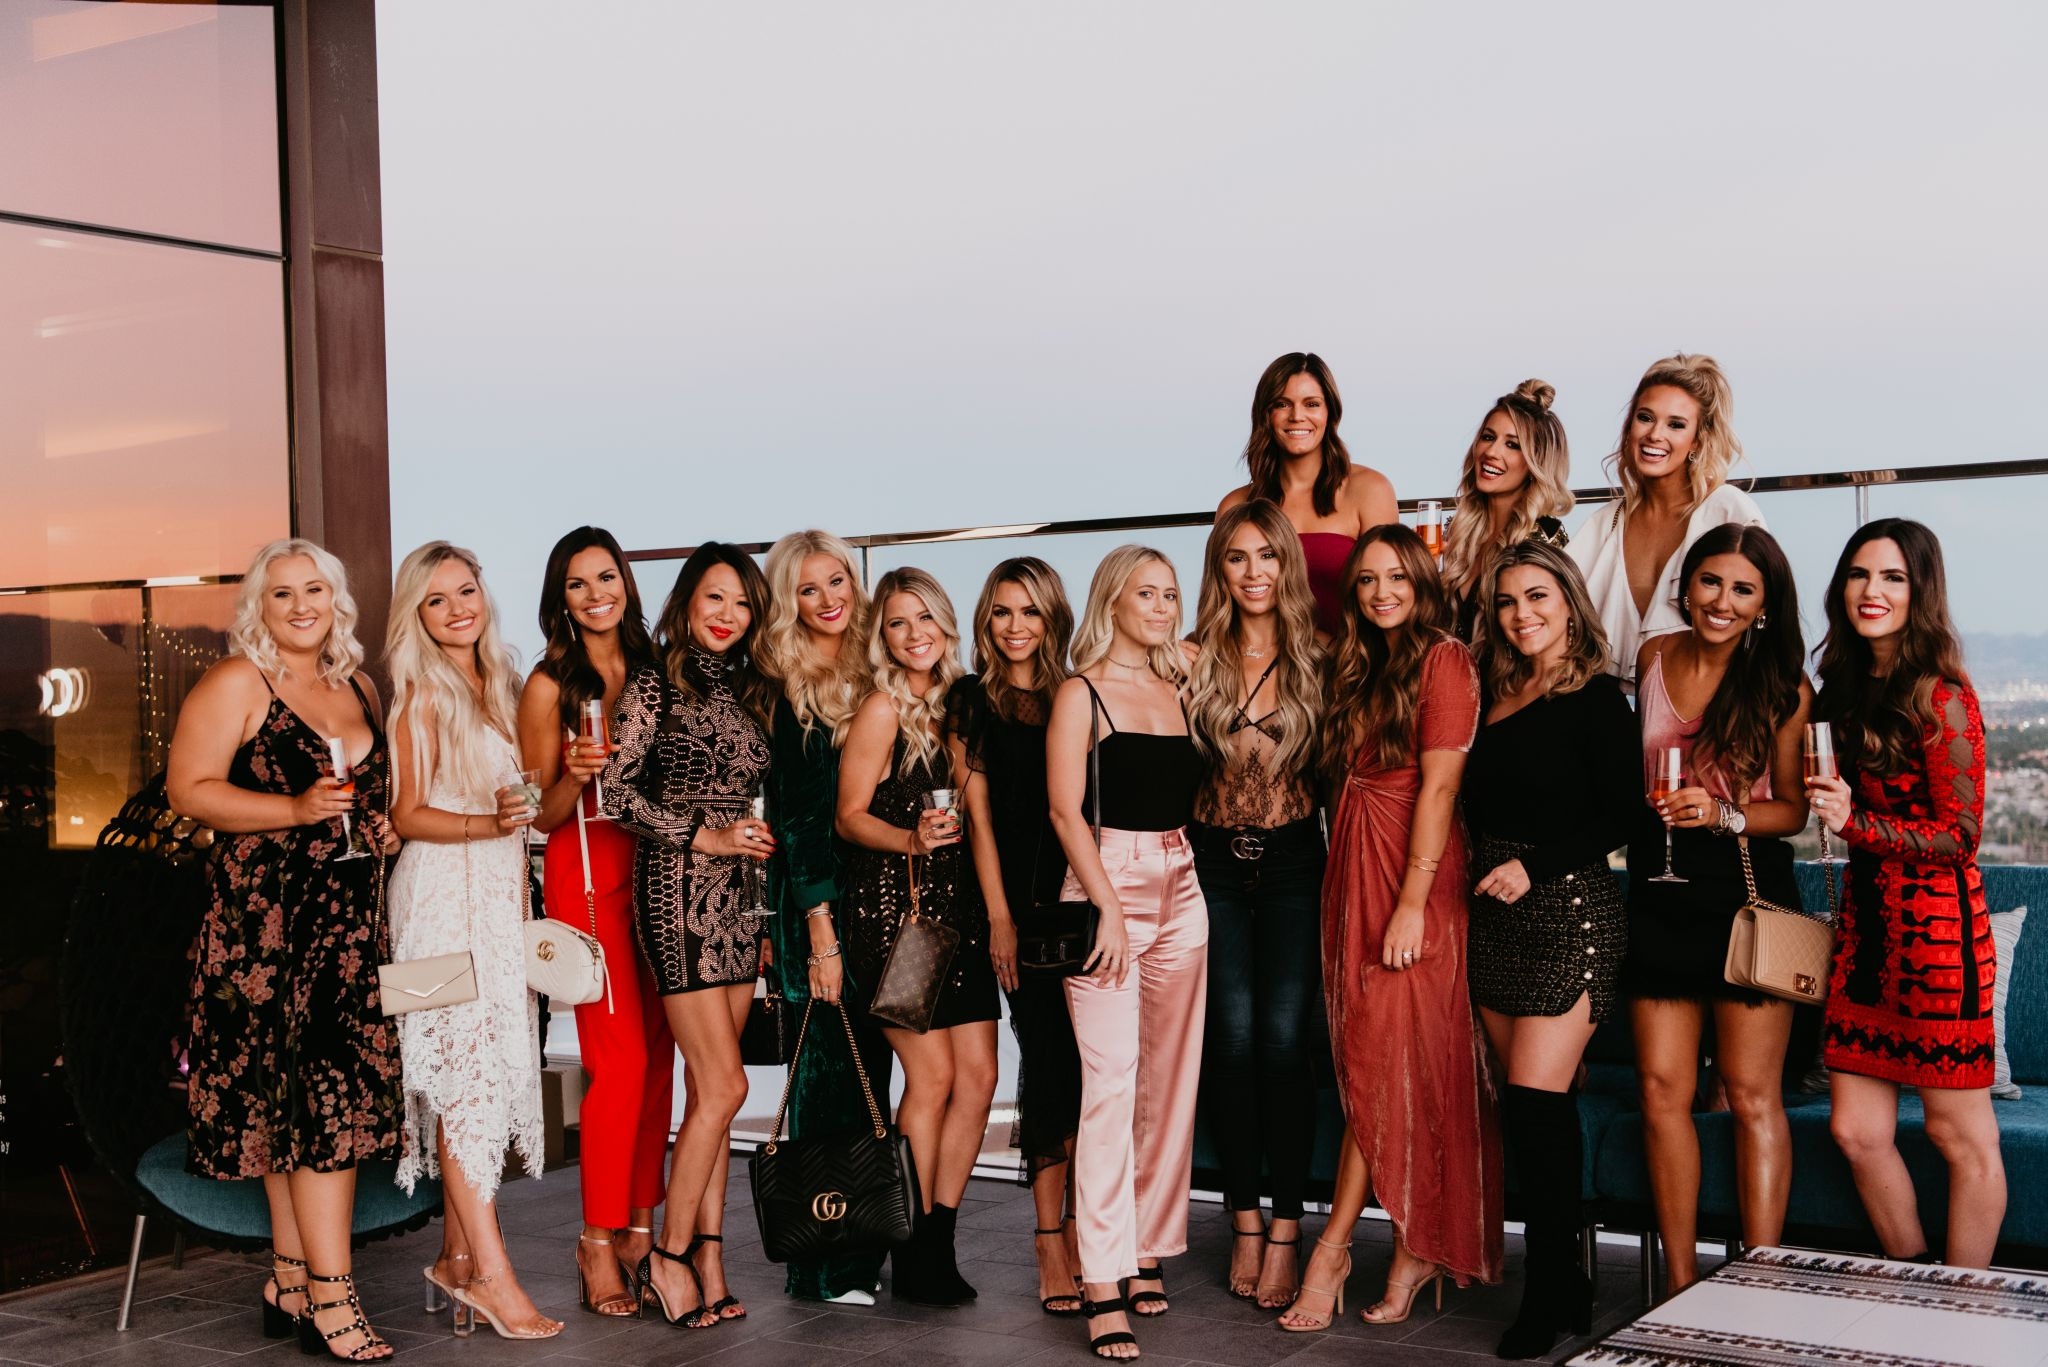 Las Vegas Blogger Trip, Mumus and macaroons, laura beverlin, dressupbuttercup, champagne and chanel, emily herren, wilson gabrielle, best bloggers in vegas, jennifer worman